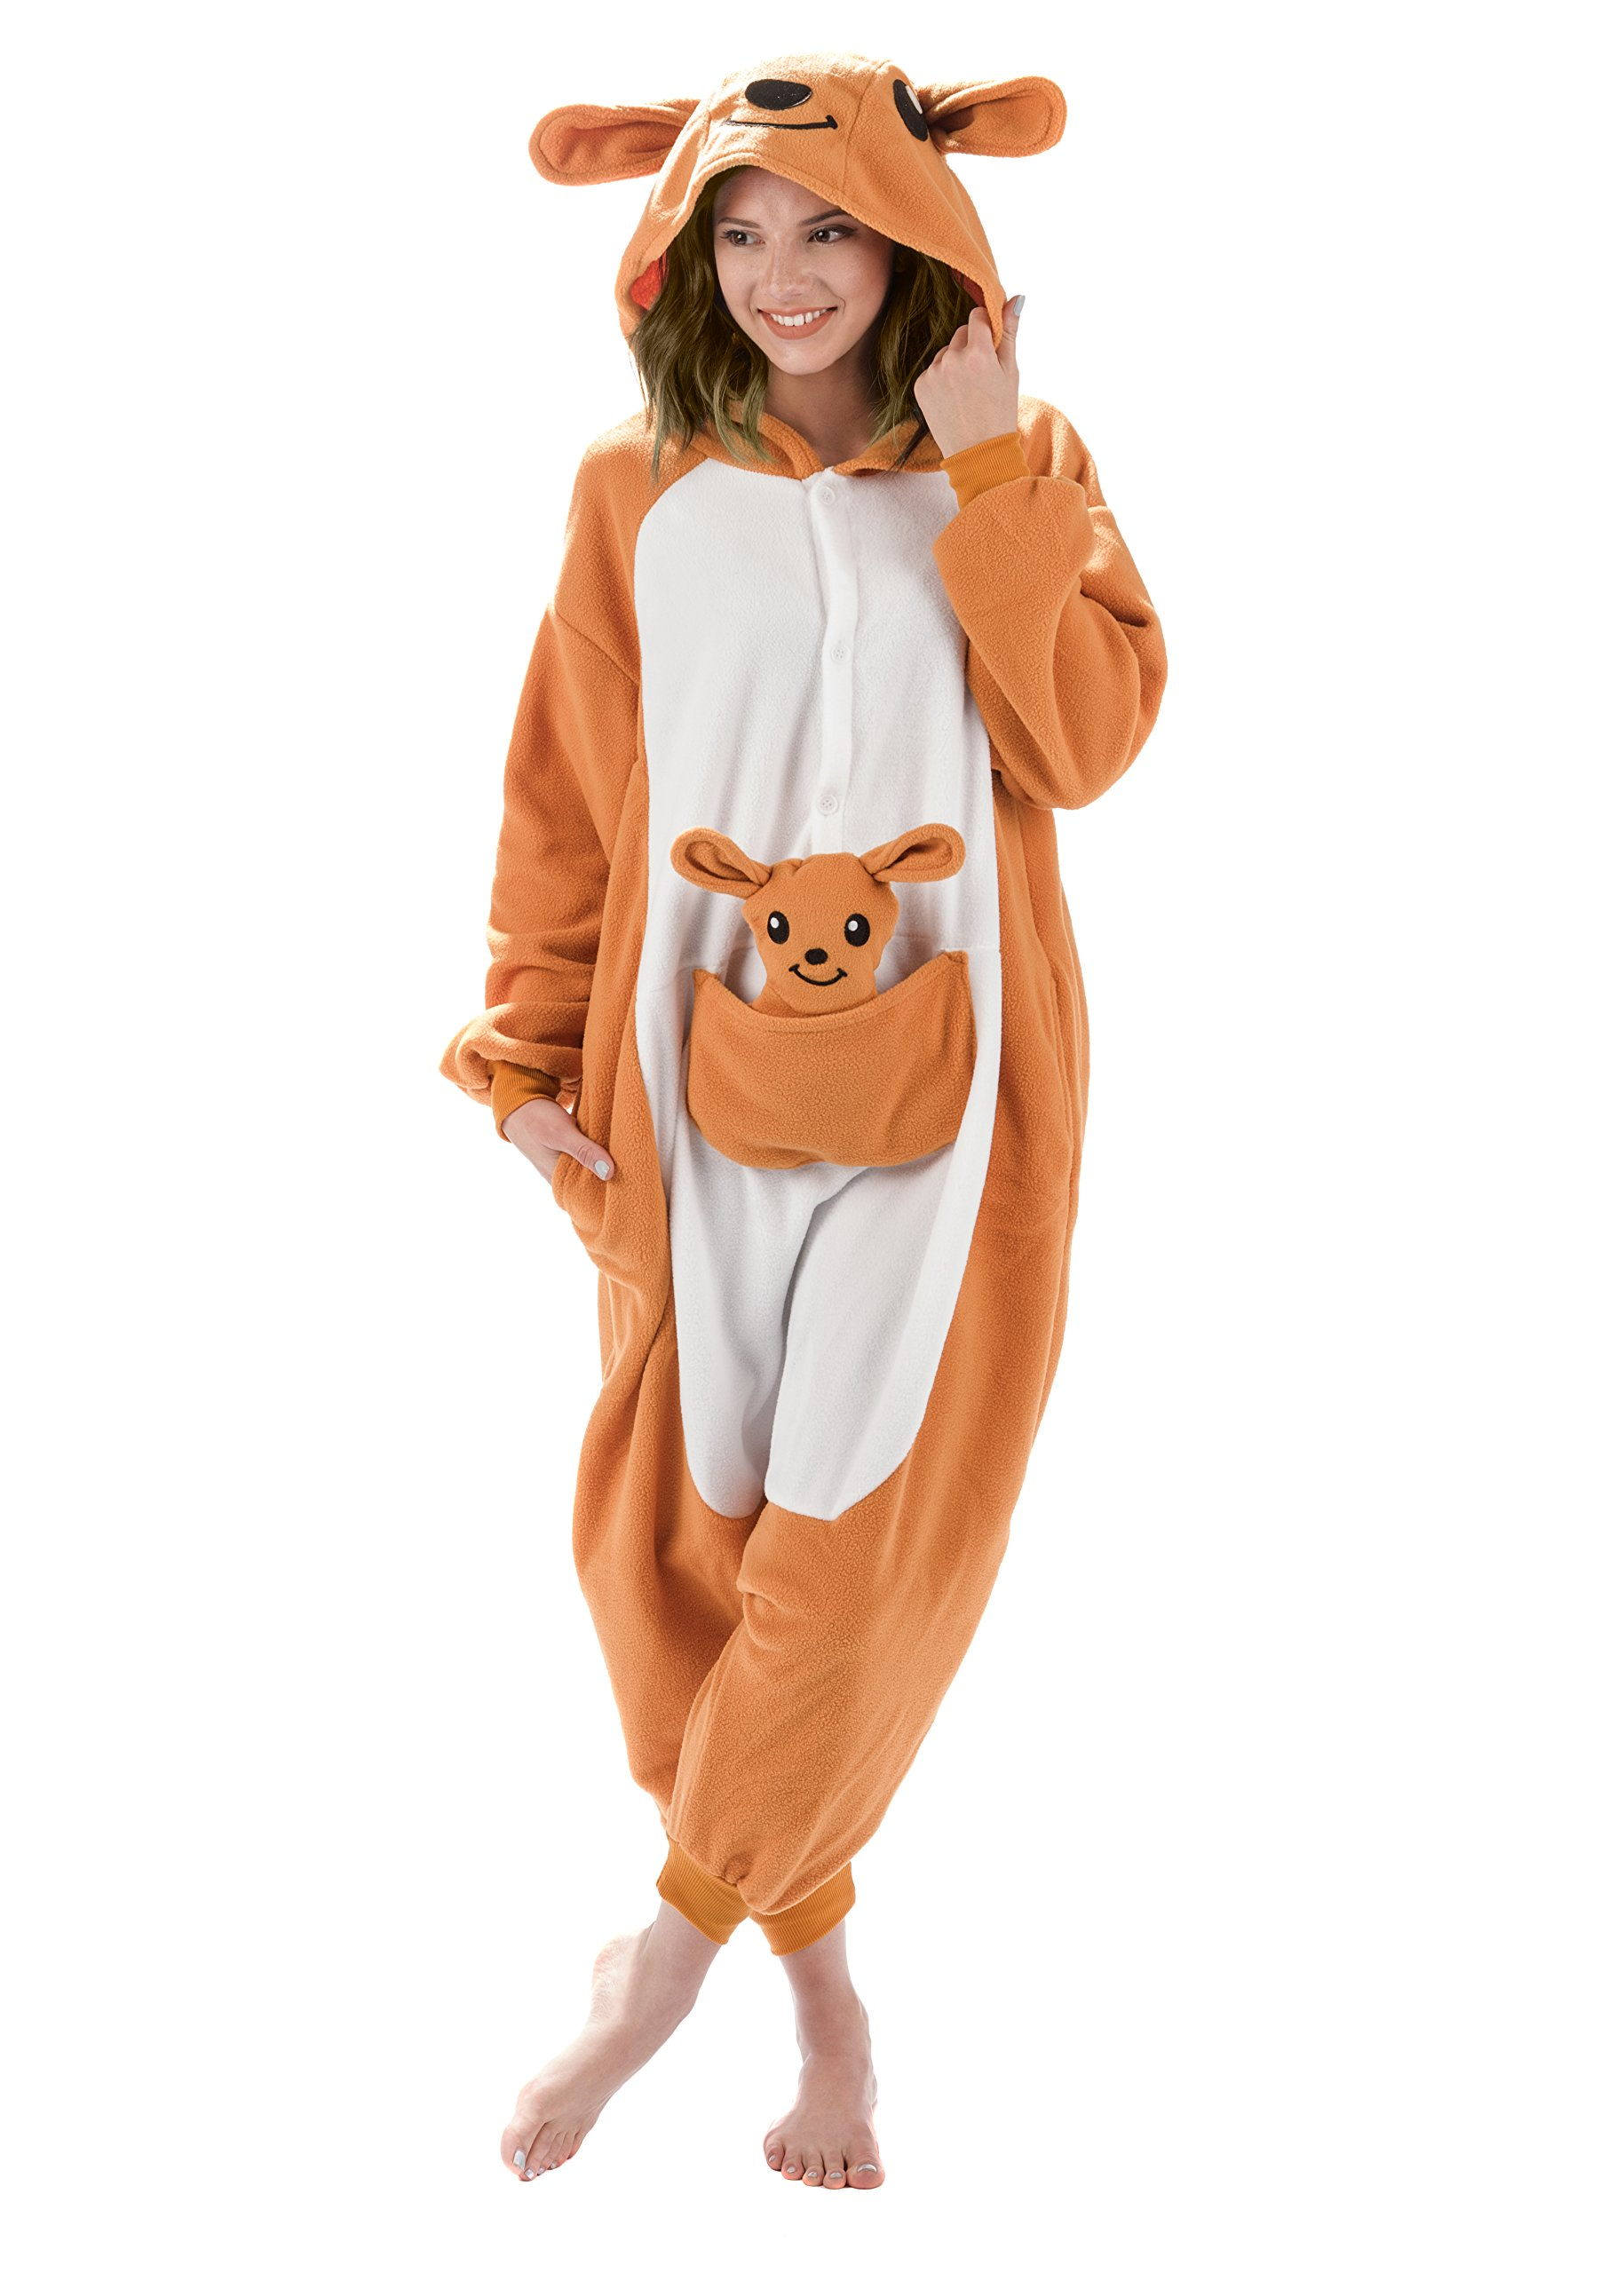 71d3acbec1 Emolly Fashion Adult Kangaroo Animal Onesie Costume Pajamas for Adults and  Teens